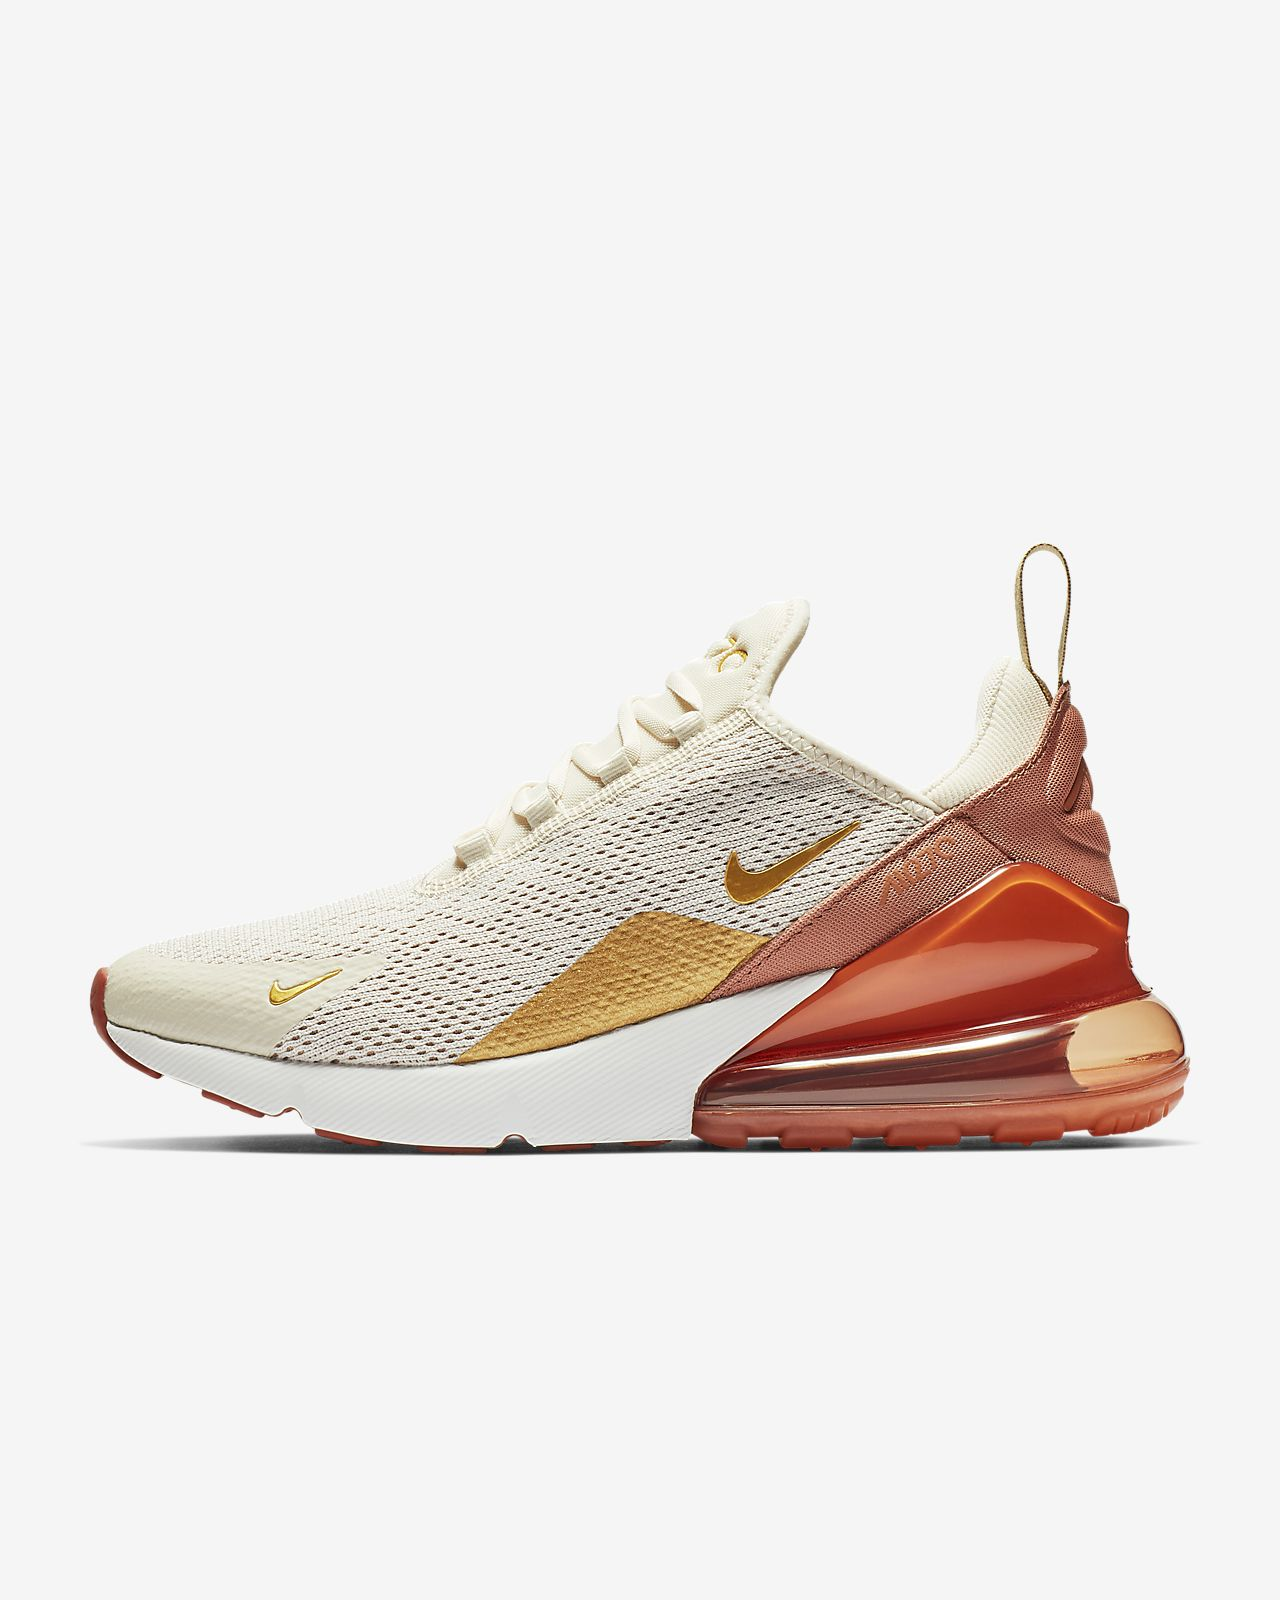 cb8229be3d5051 Nike Air Max 270 Women s Shoe. Nike.com